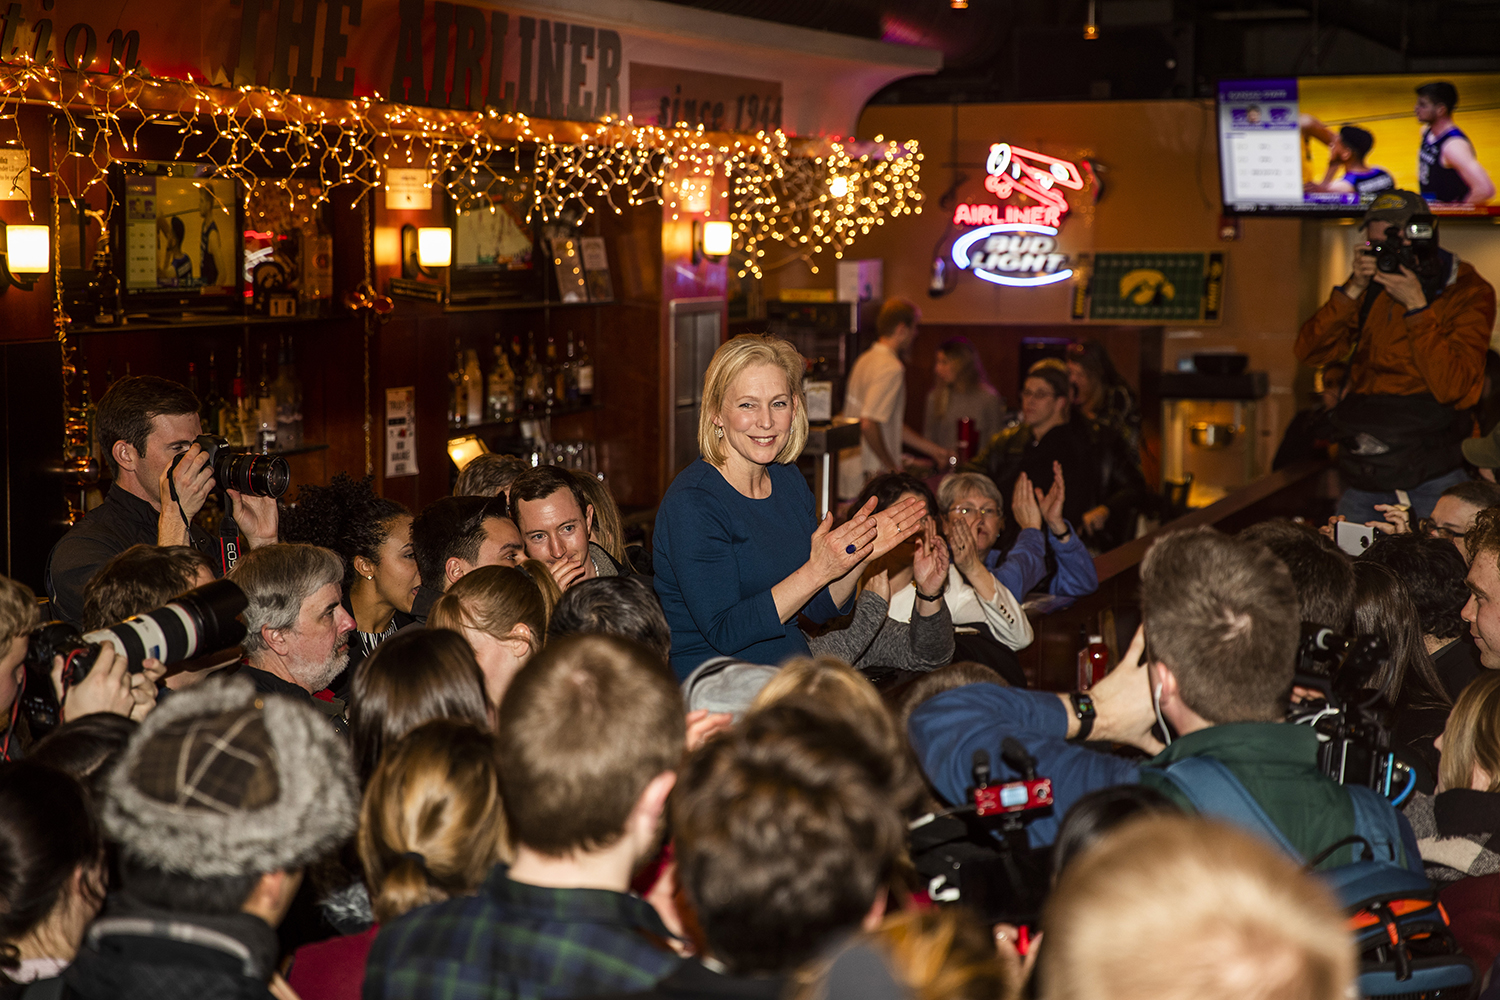 Sen. Kirsten Gillibrand, D-N.Y., engages with the crowd during her campaign stop at The Airliner on Monday, February 18, 2019. Gillibrand visited Cedar Rapids and Iowa City as she campaigns for the democratic nomination for the 2020 Presidential Election.